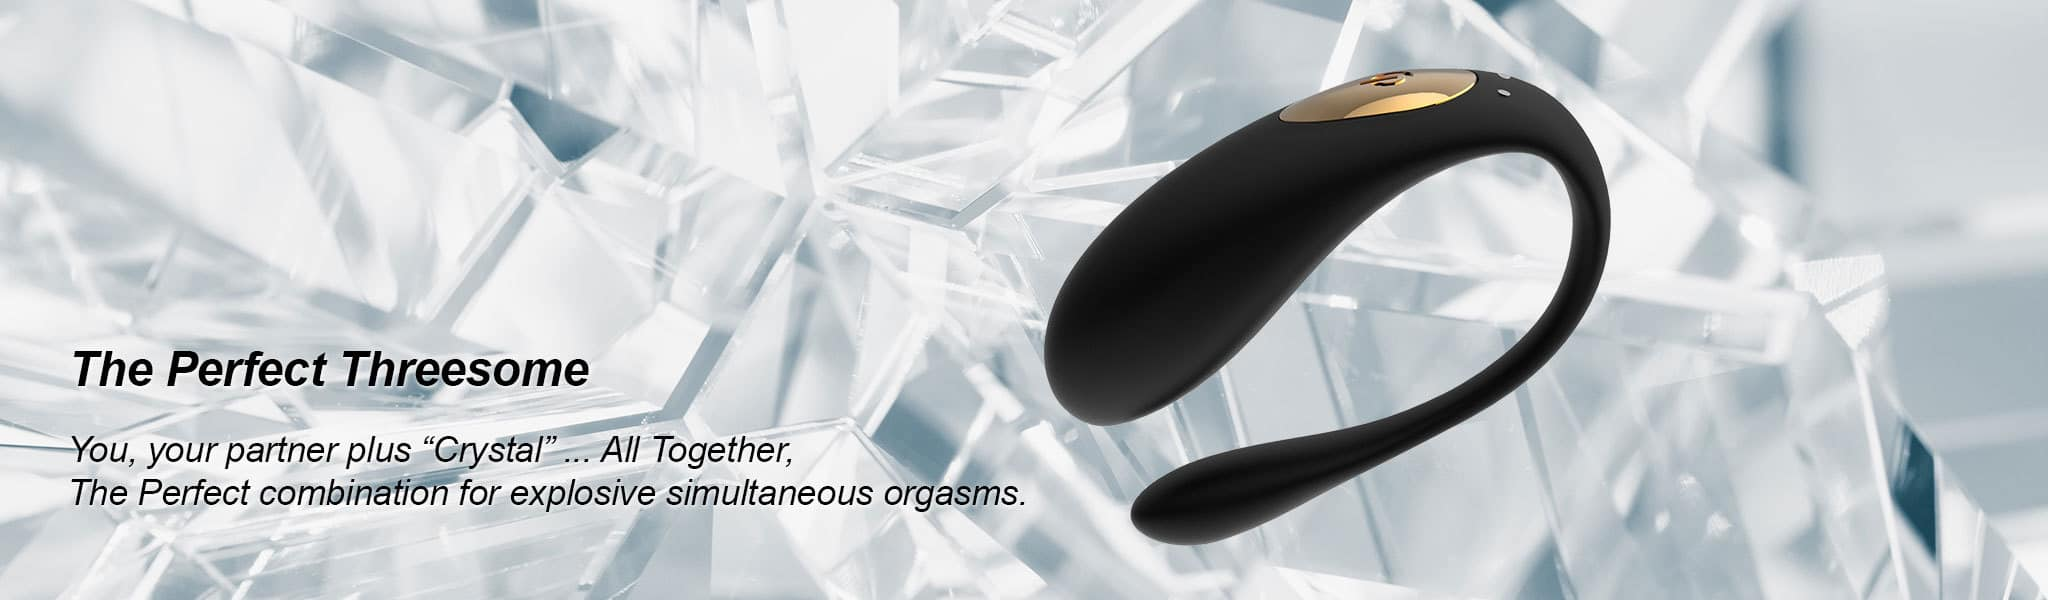 Crystal Couples Vibrator